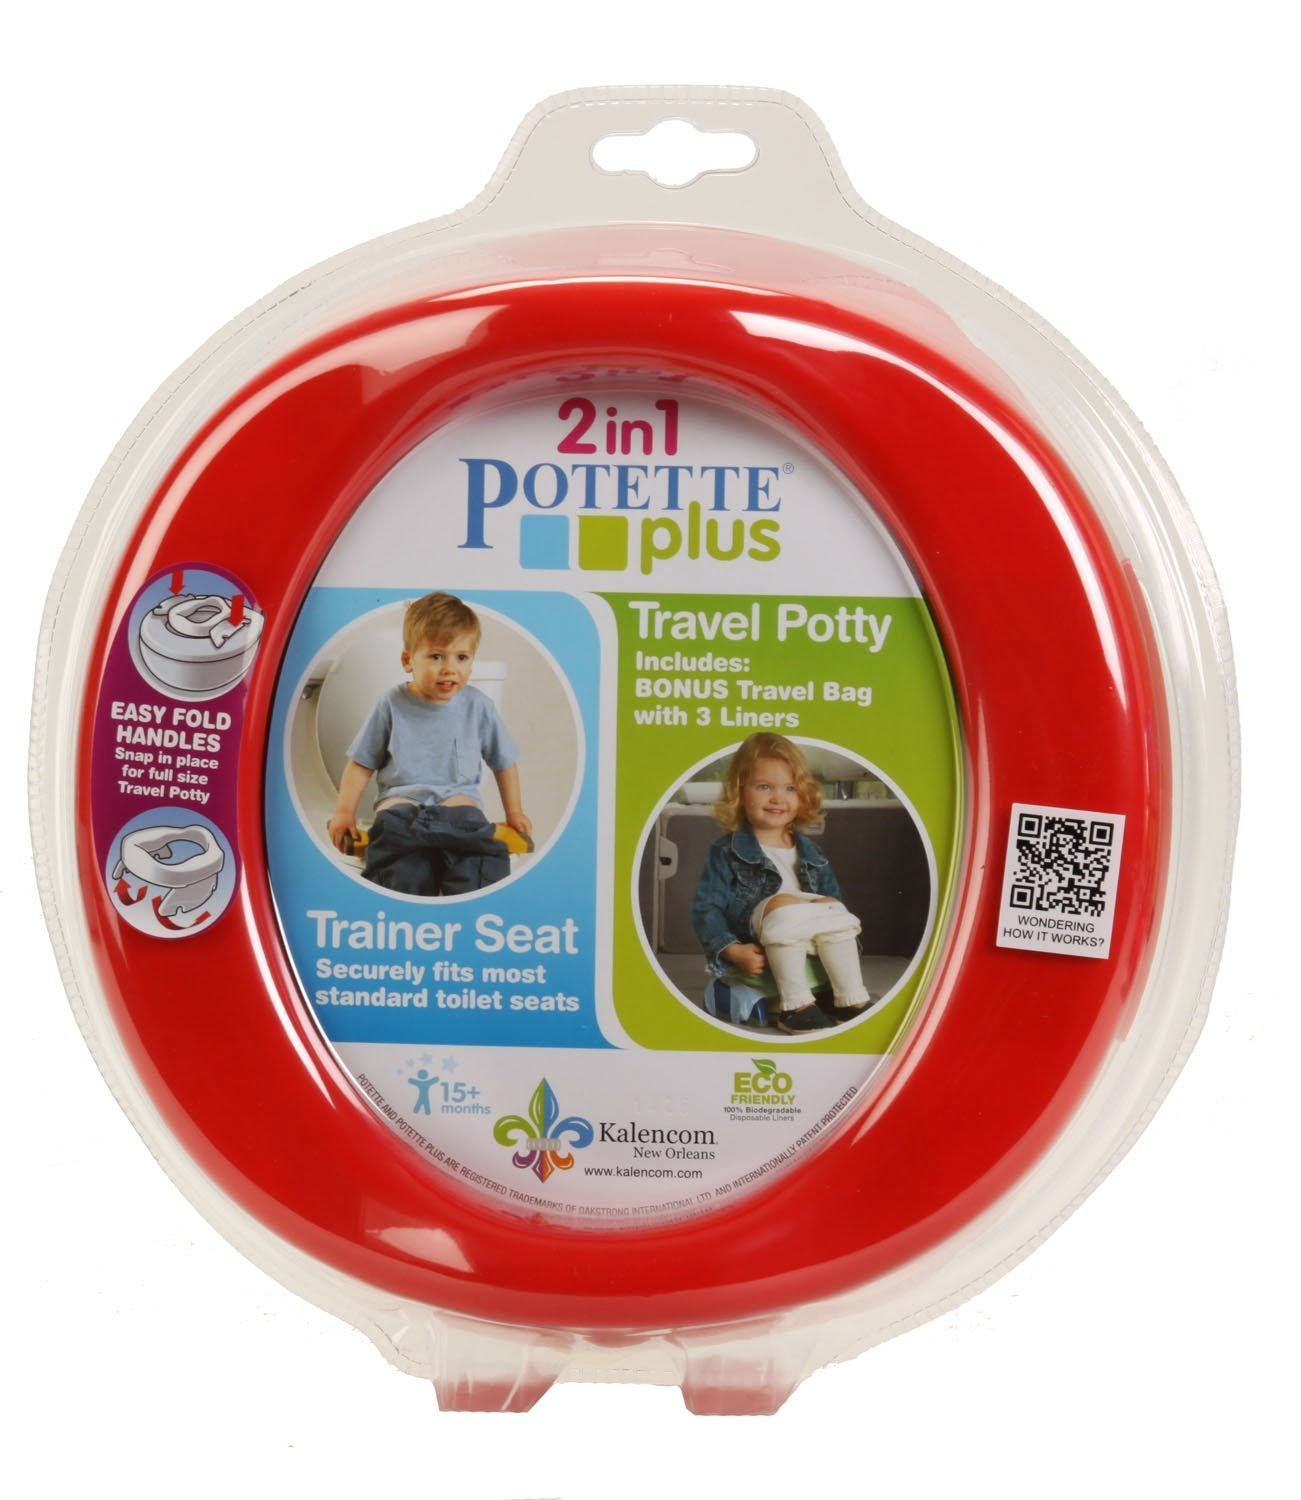 travel potty, potty training travel